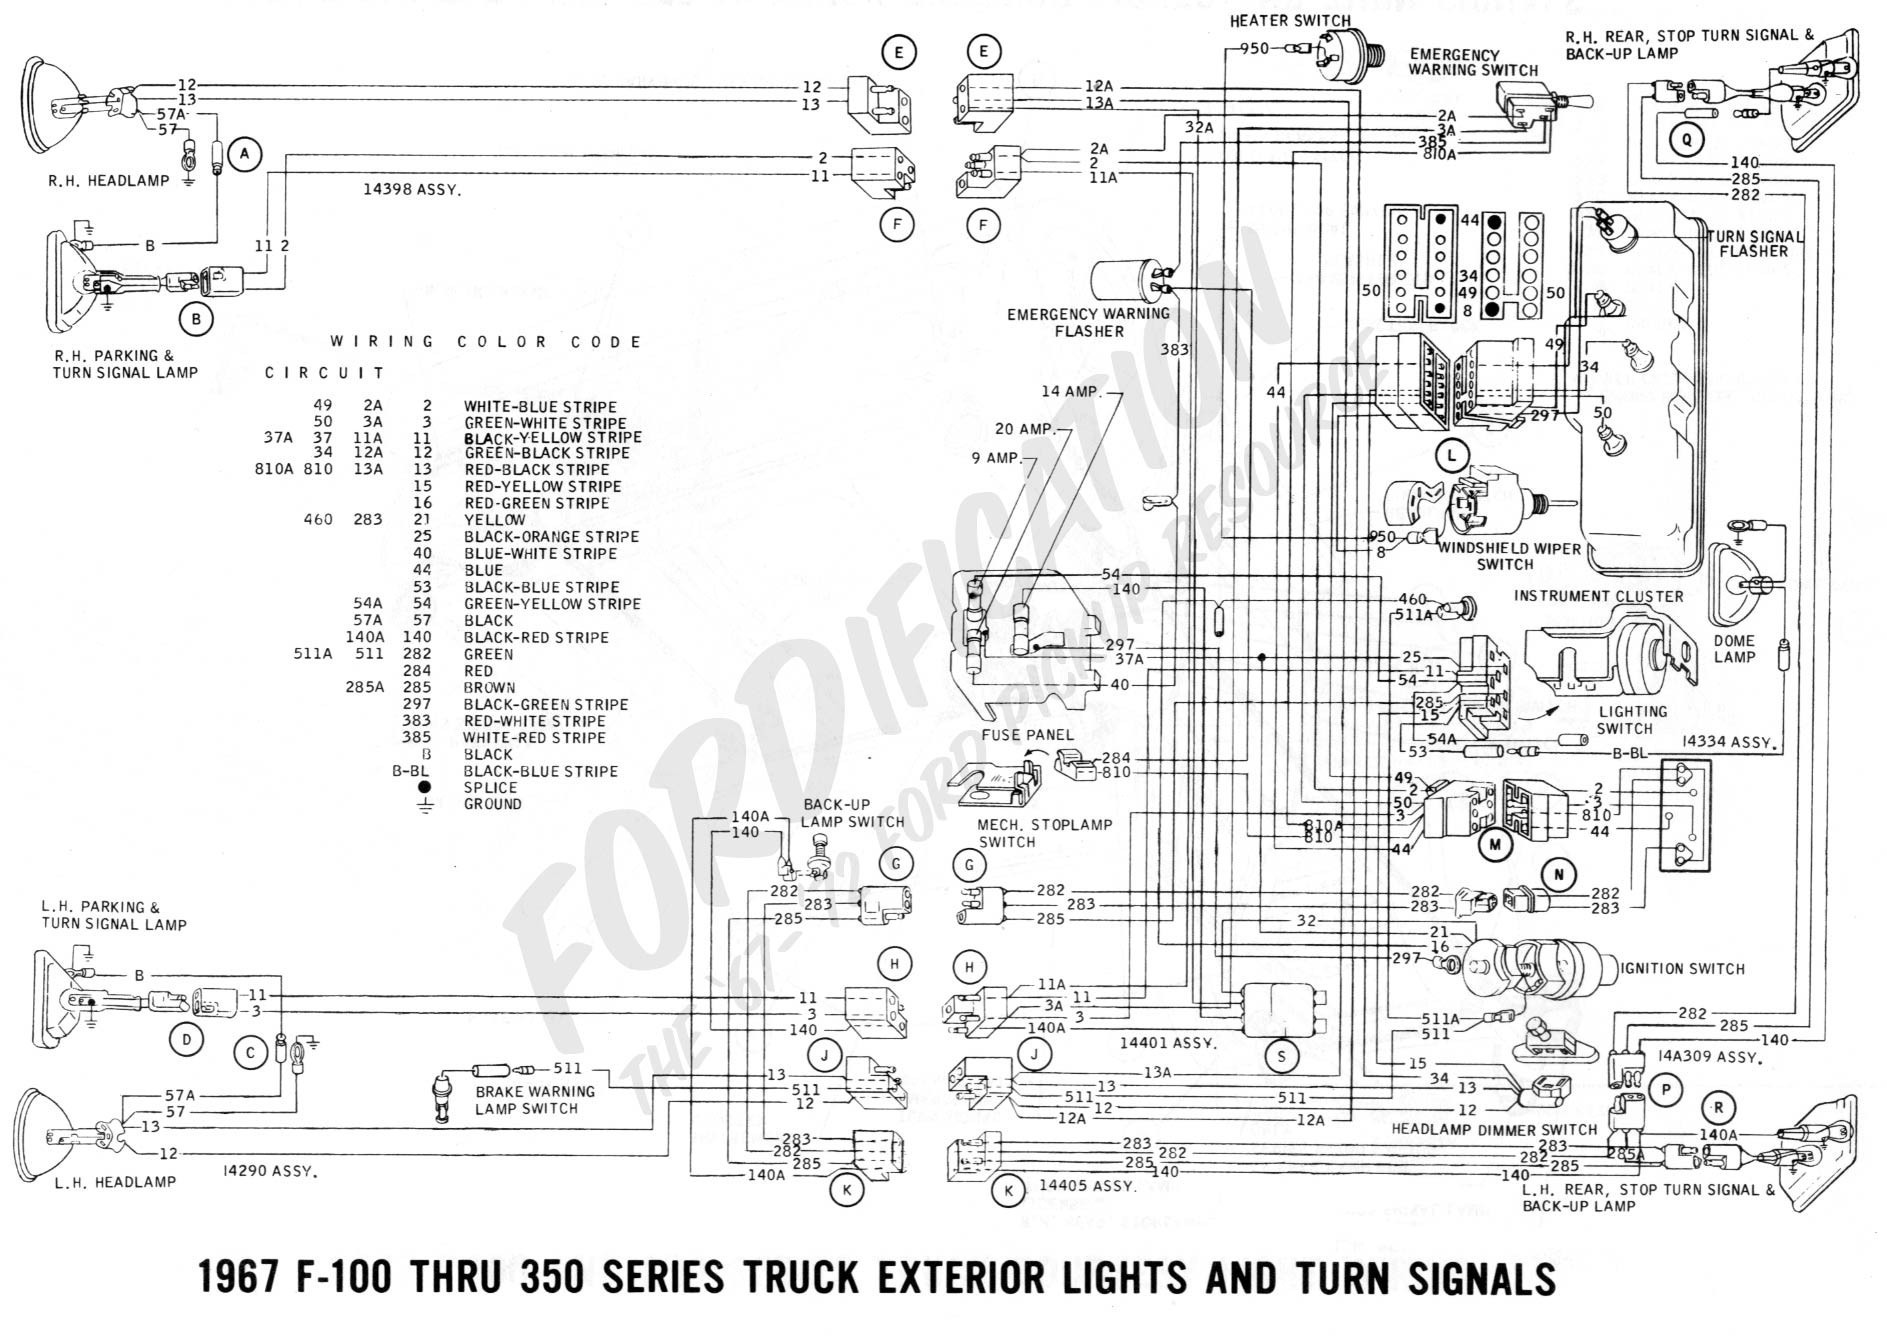 1997 Ford Ranger Engine Diagram Luxury Wiring Harness Of